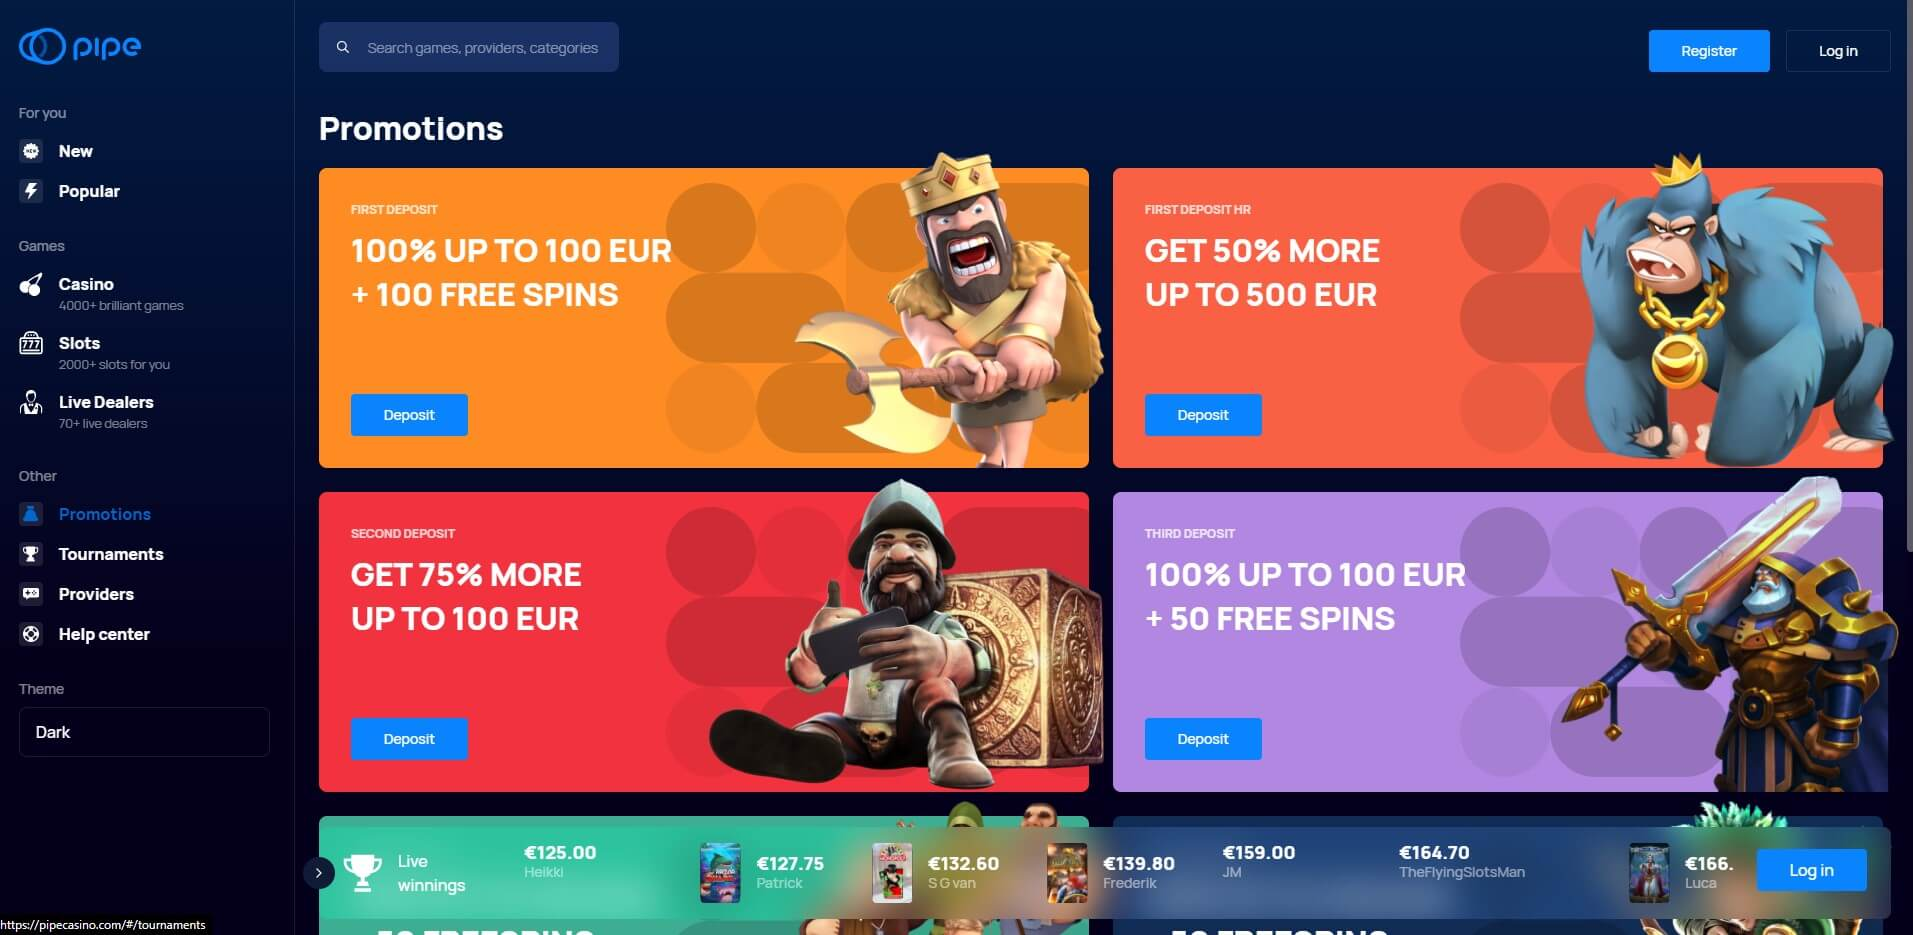 Promotions at Pipe Casino